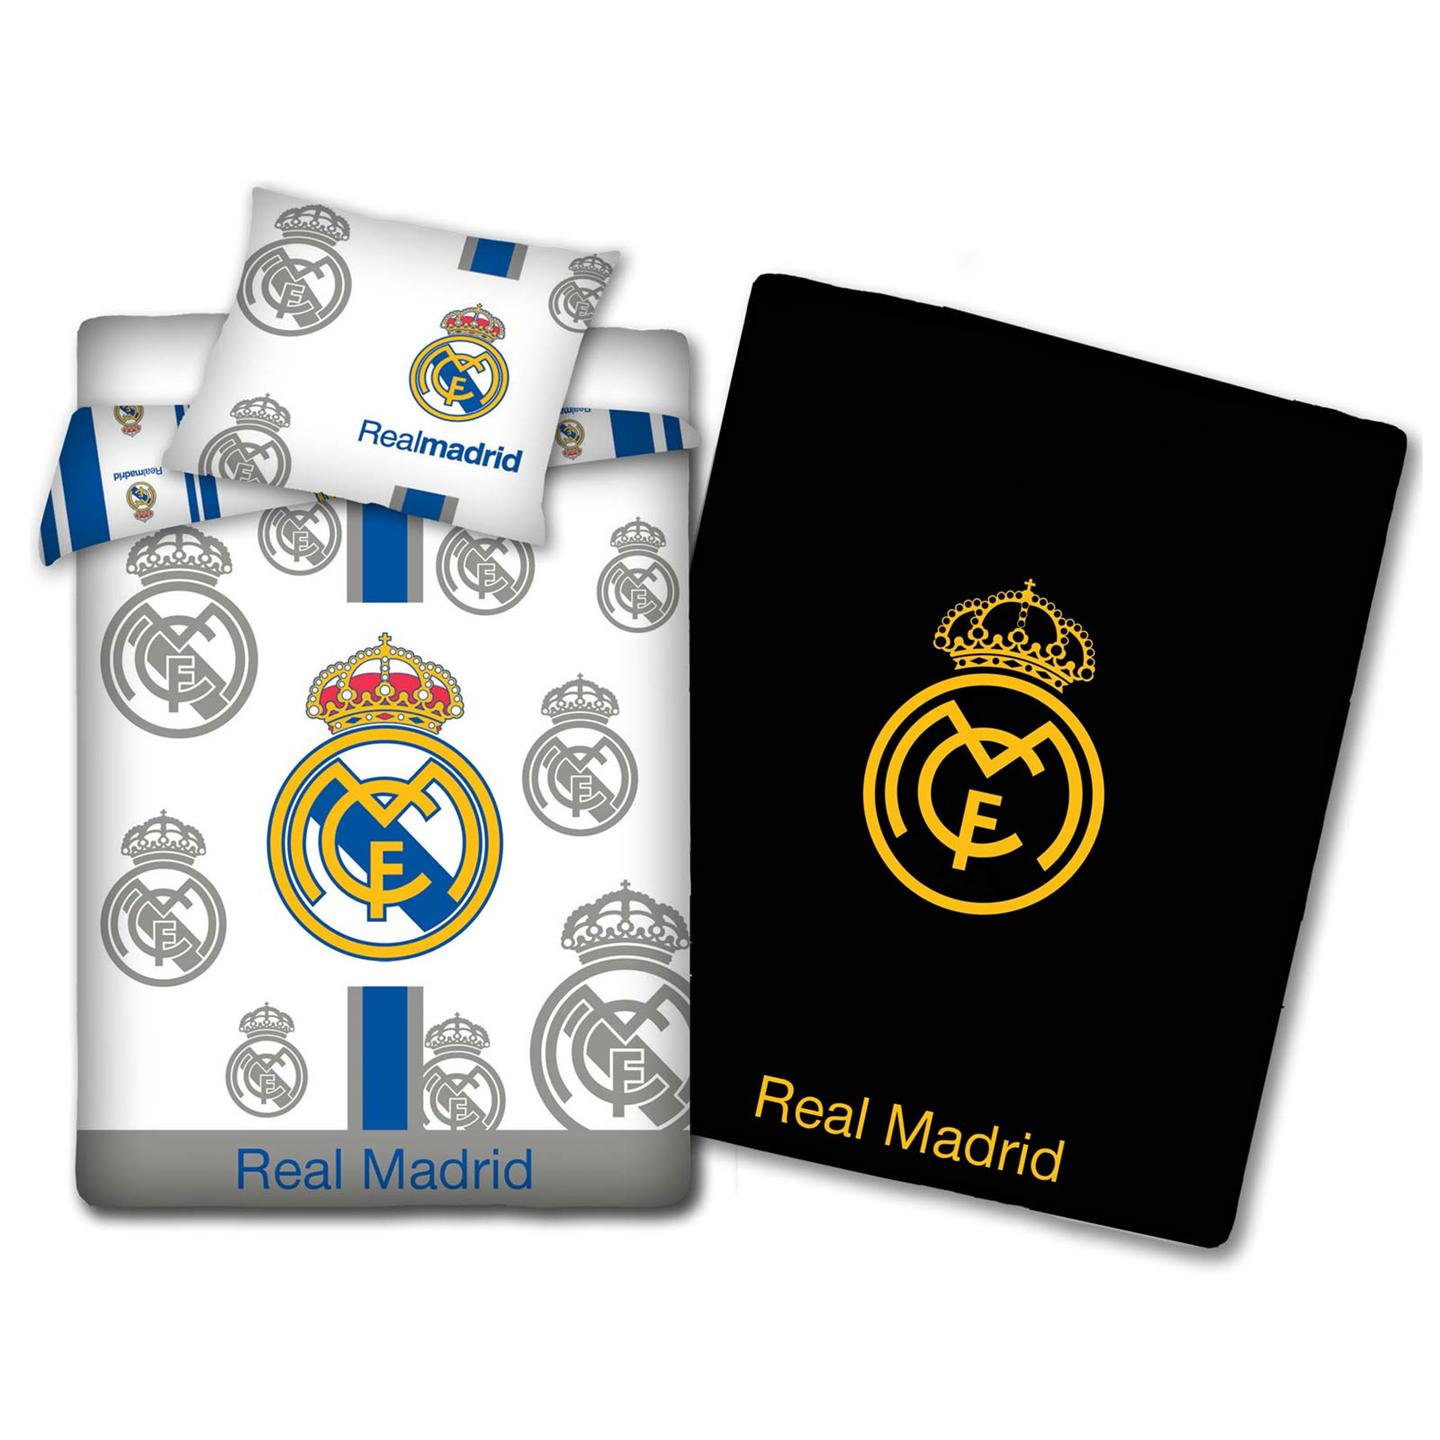 Bettdecken Real Real Madrid Cf Bettwäsche Bettdecken Set Nachleuchtend